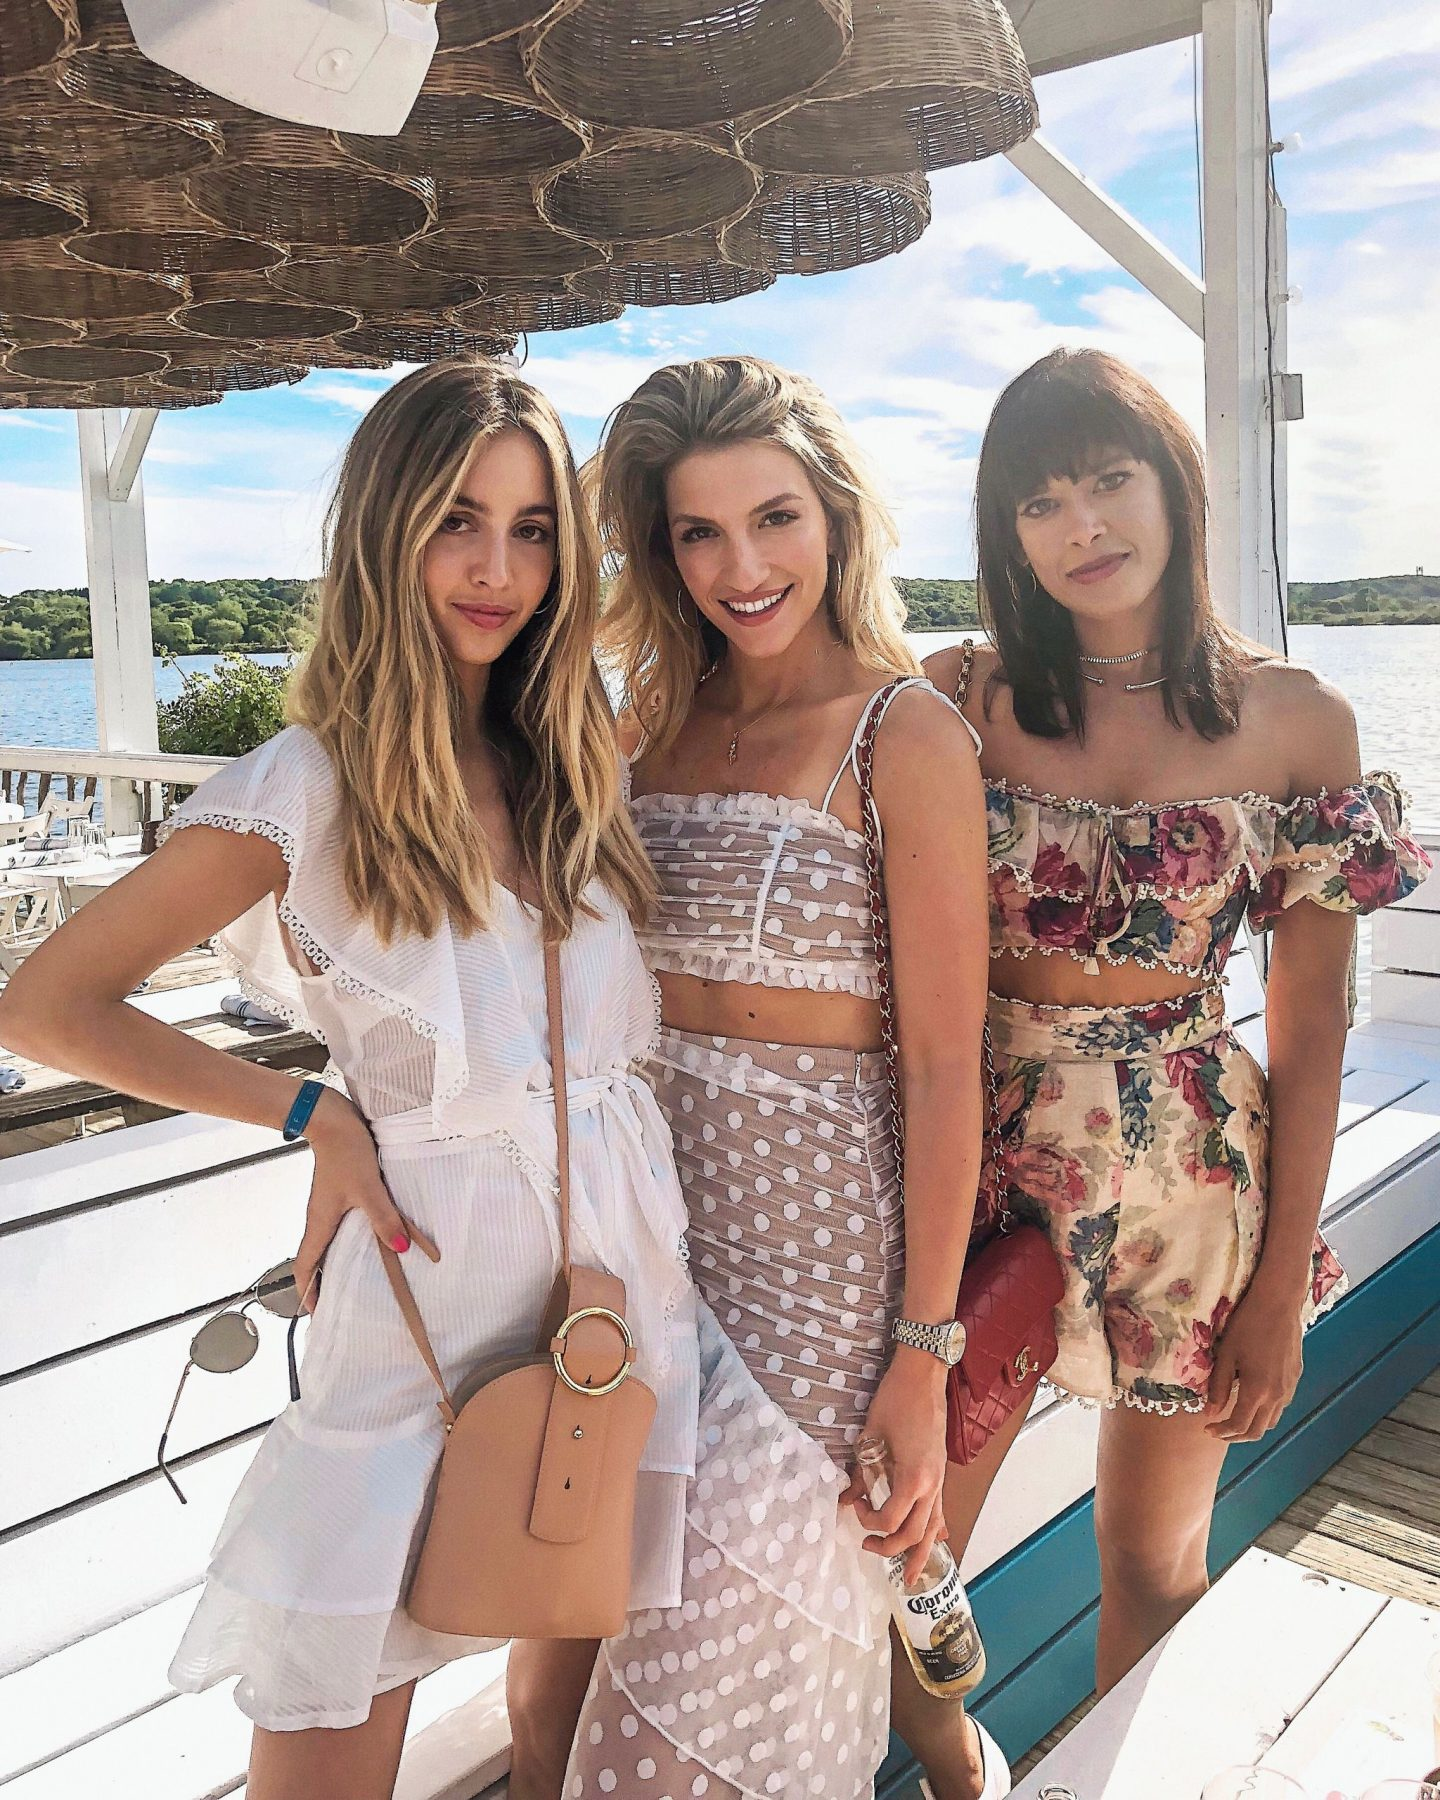 Cassandra DiMicco, Cass DiMicco, Dressed For Dreams, NYC, New York City, New York, Street Style NYC, Street Style 2018, NYC Street Style Street Style Outfits, 2018 Trends, NYC Fashion Blogger, NYC to do list, NYC to do, NYC bucket list, NYC Instagram Spots, the Hamptons, Montauk, surf lodge, Hamptons to do, majorelle Sawyer top, majorelle Heidi skirt, majorelle two piece set, red Chanel handbag